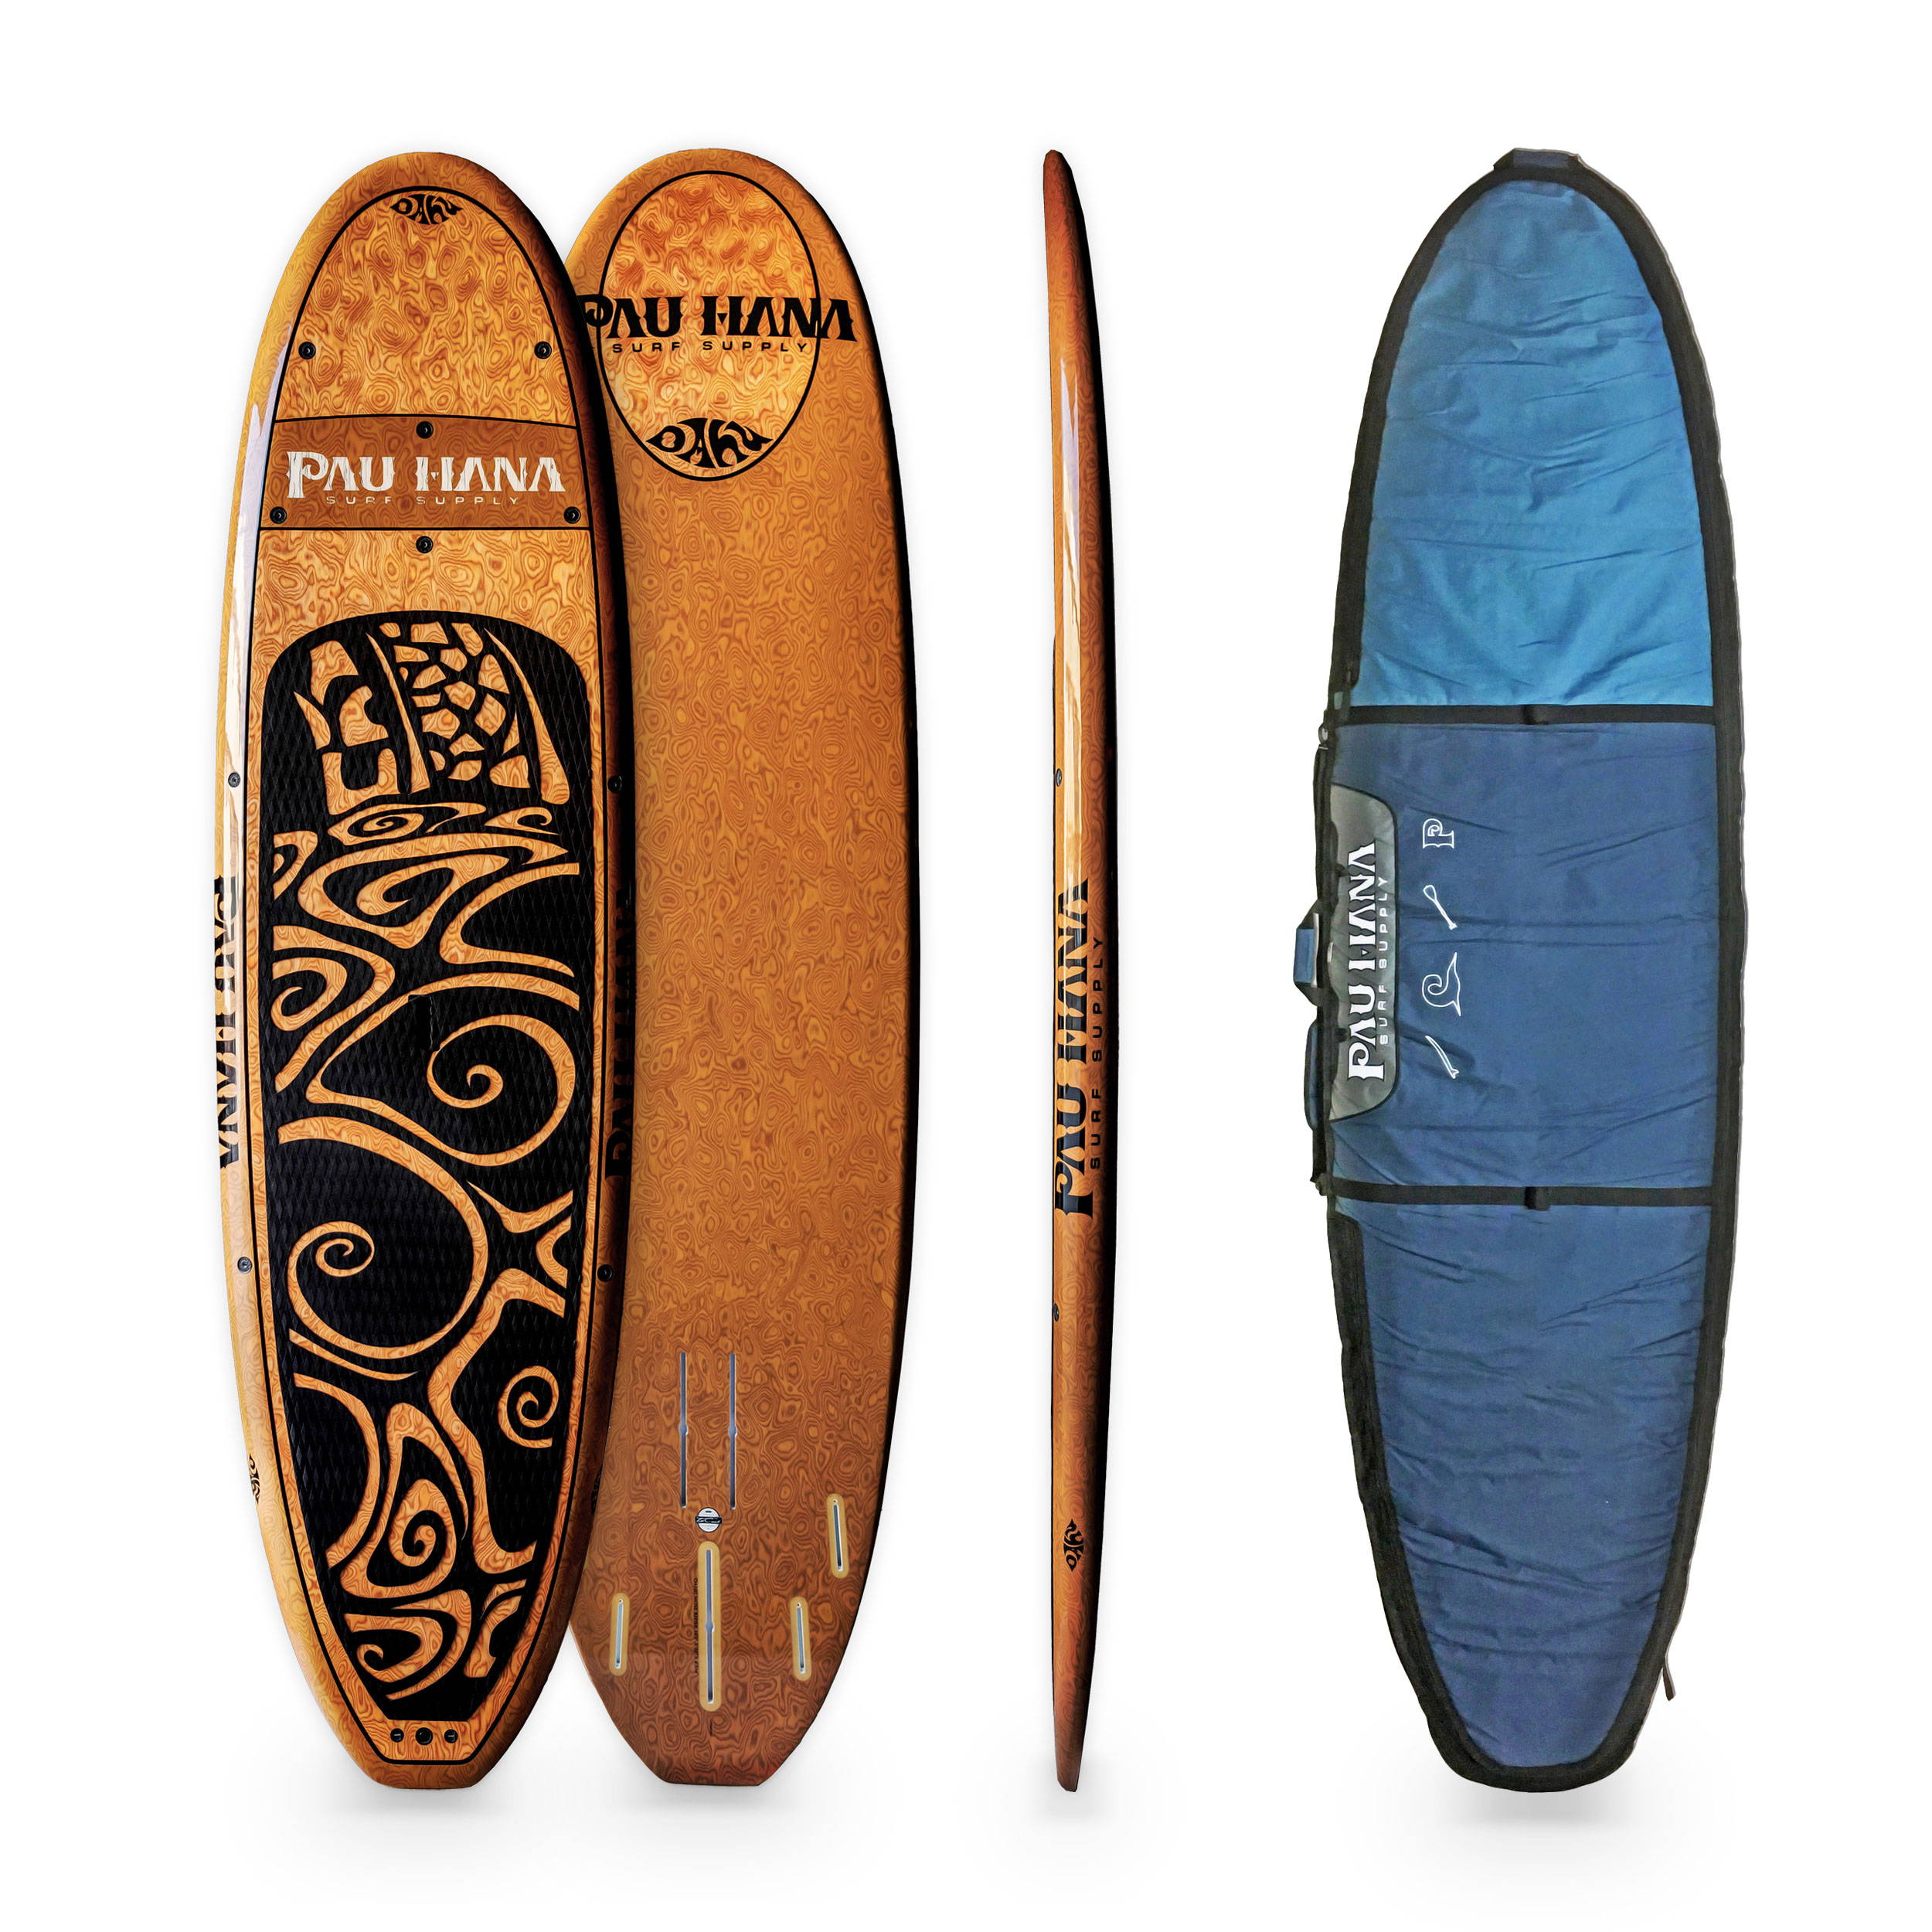 Oahu coconut stand up paddle board and SUP board bag